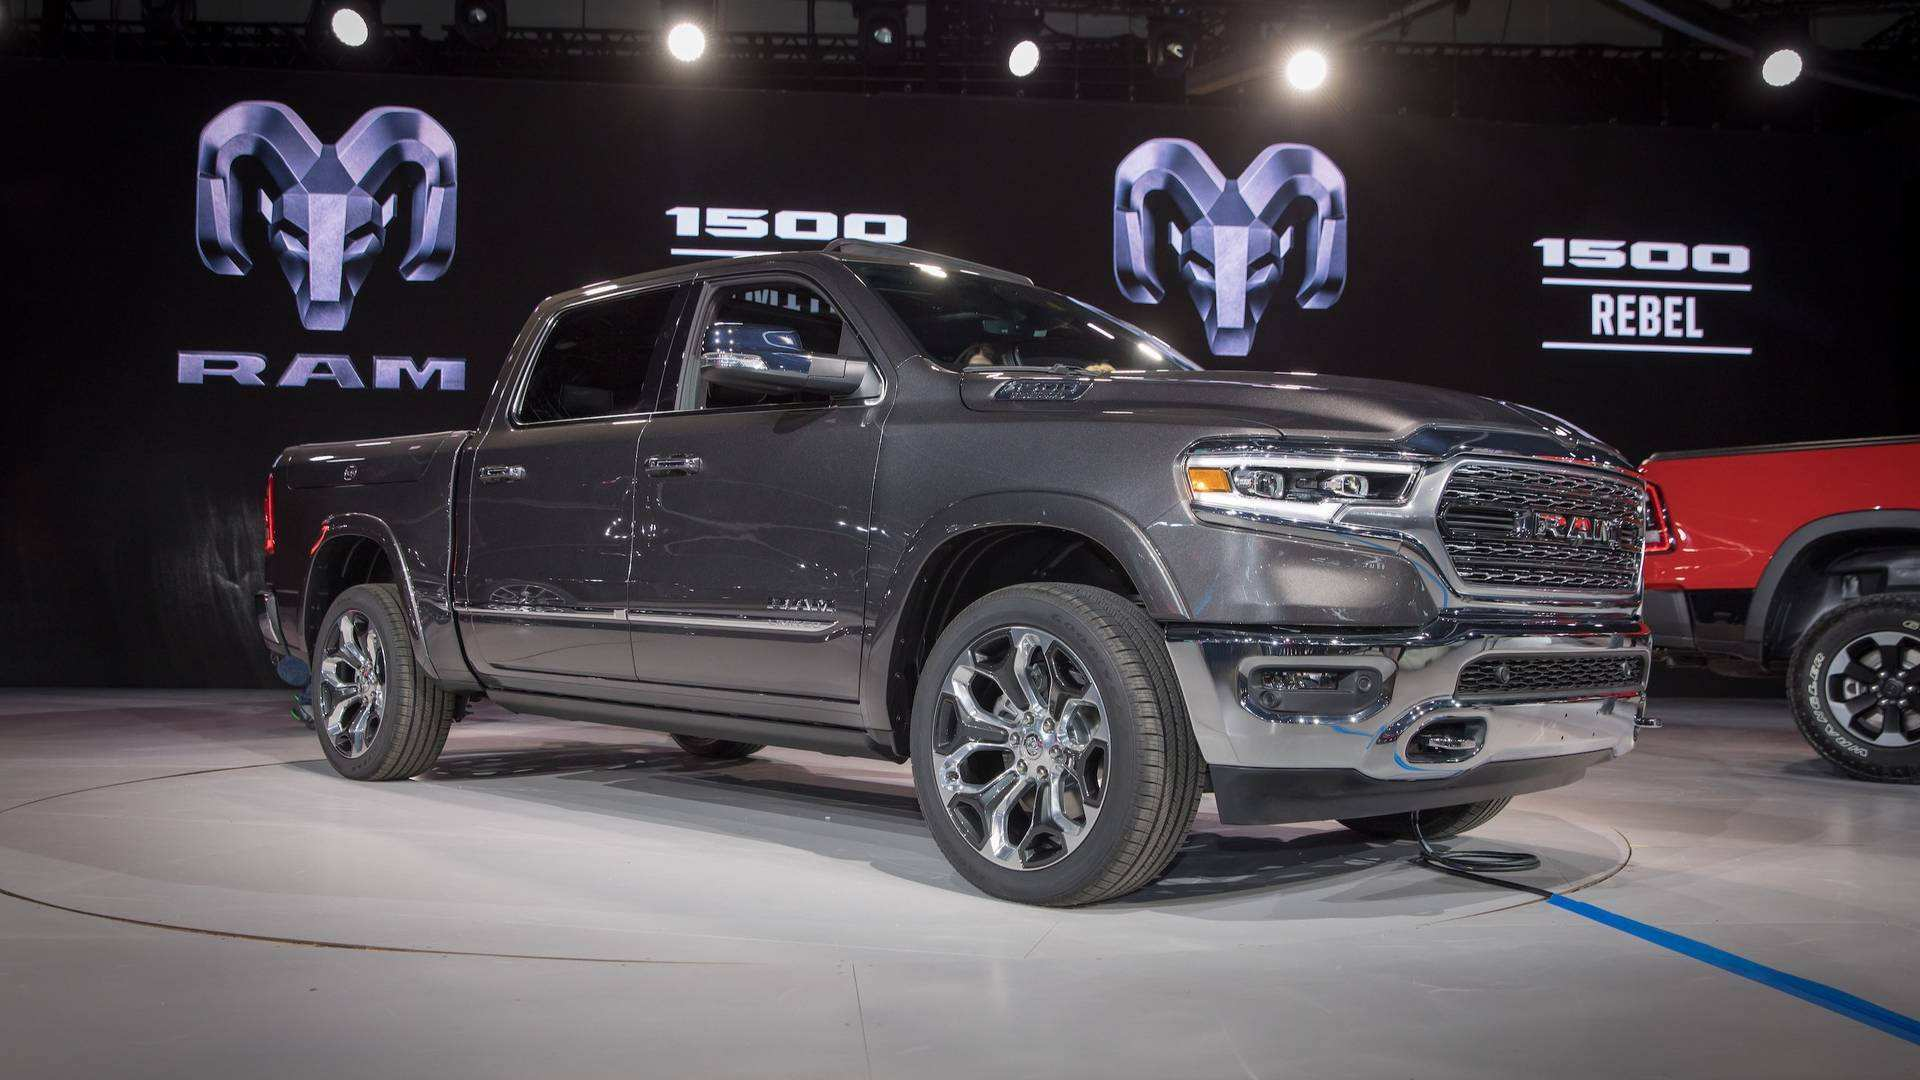 20 A 2019 Dodge Ram 1500 Images Redesign And Concept